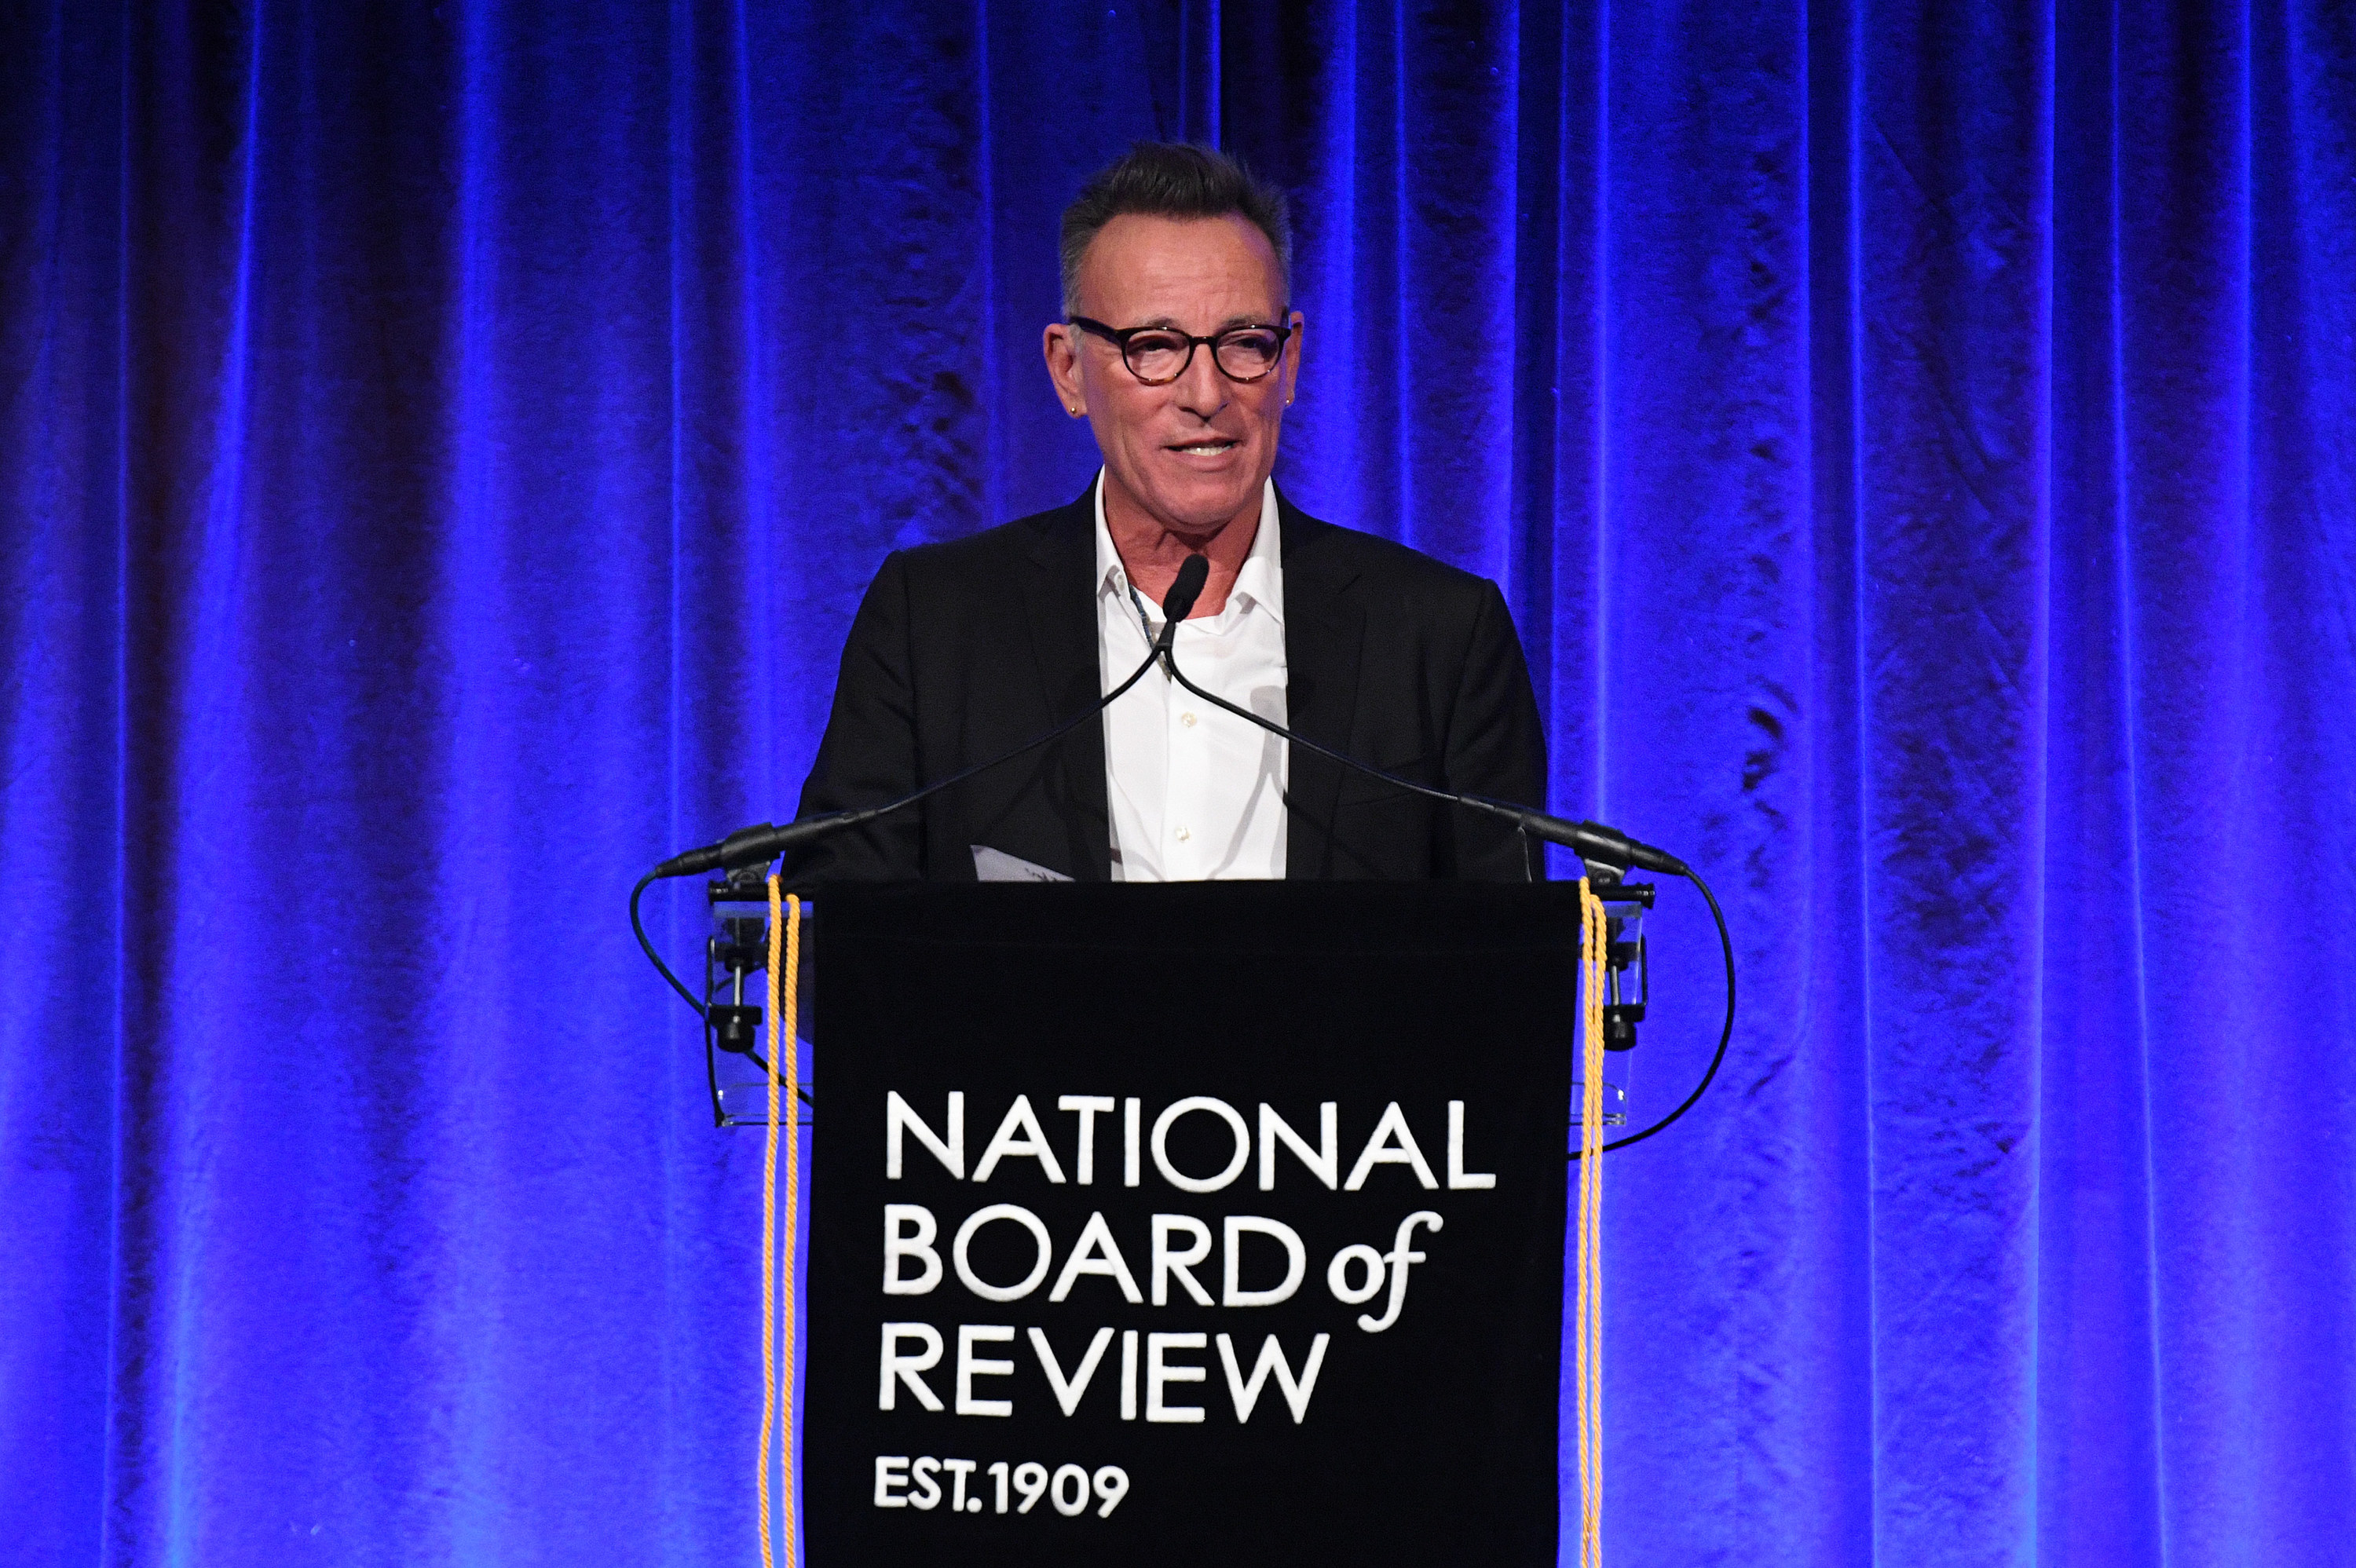 Bruce speaking at a National Board of Review event